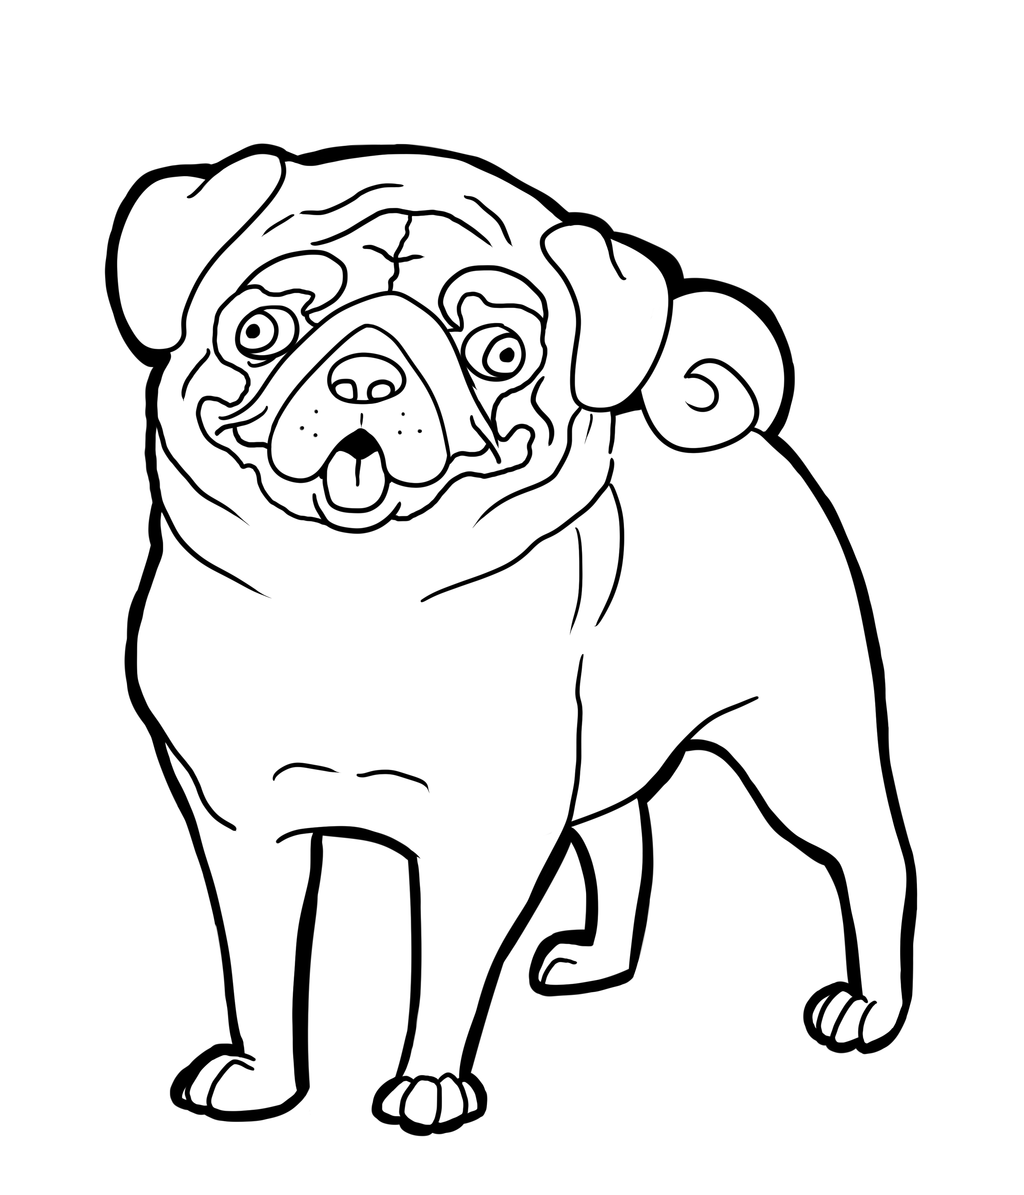 pug puppy coloring pages pug coloring pages to download and print for free pug puppy coloring pages